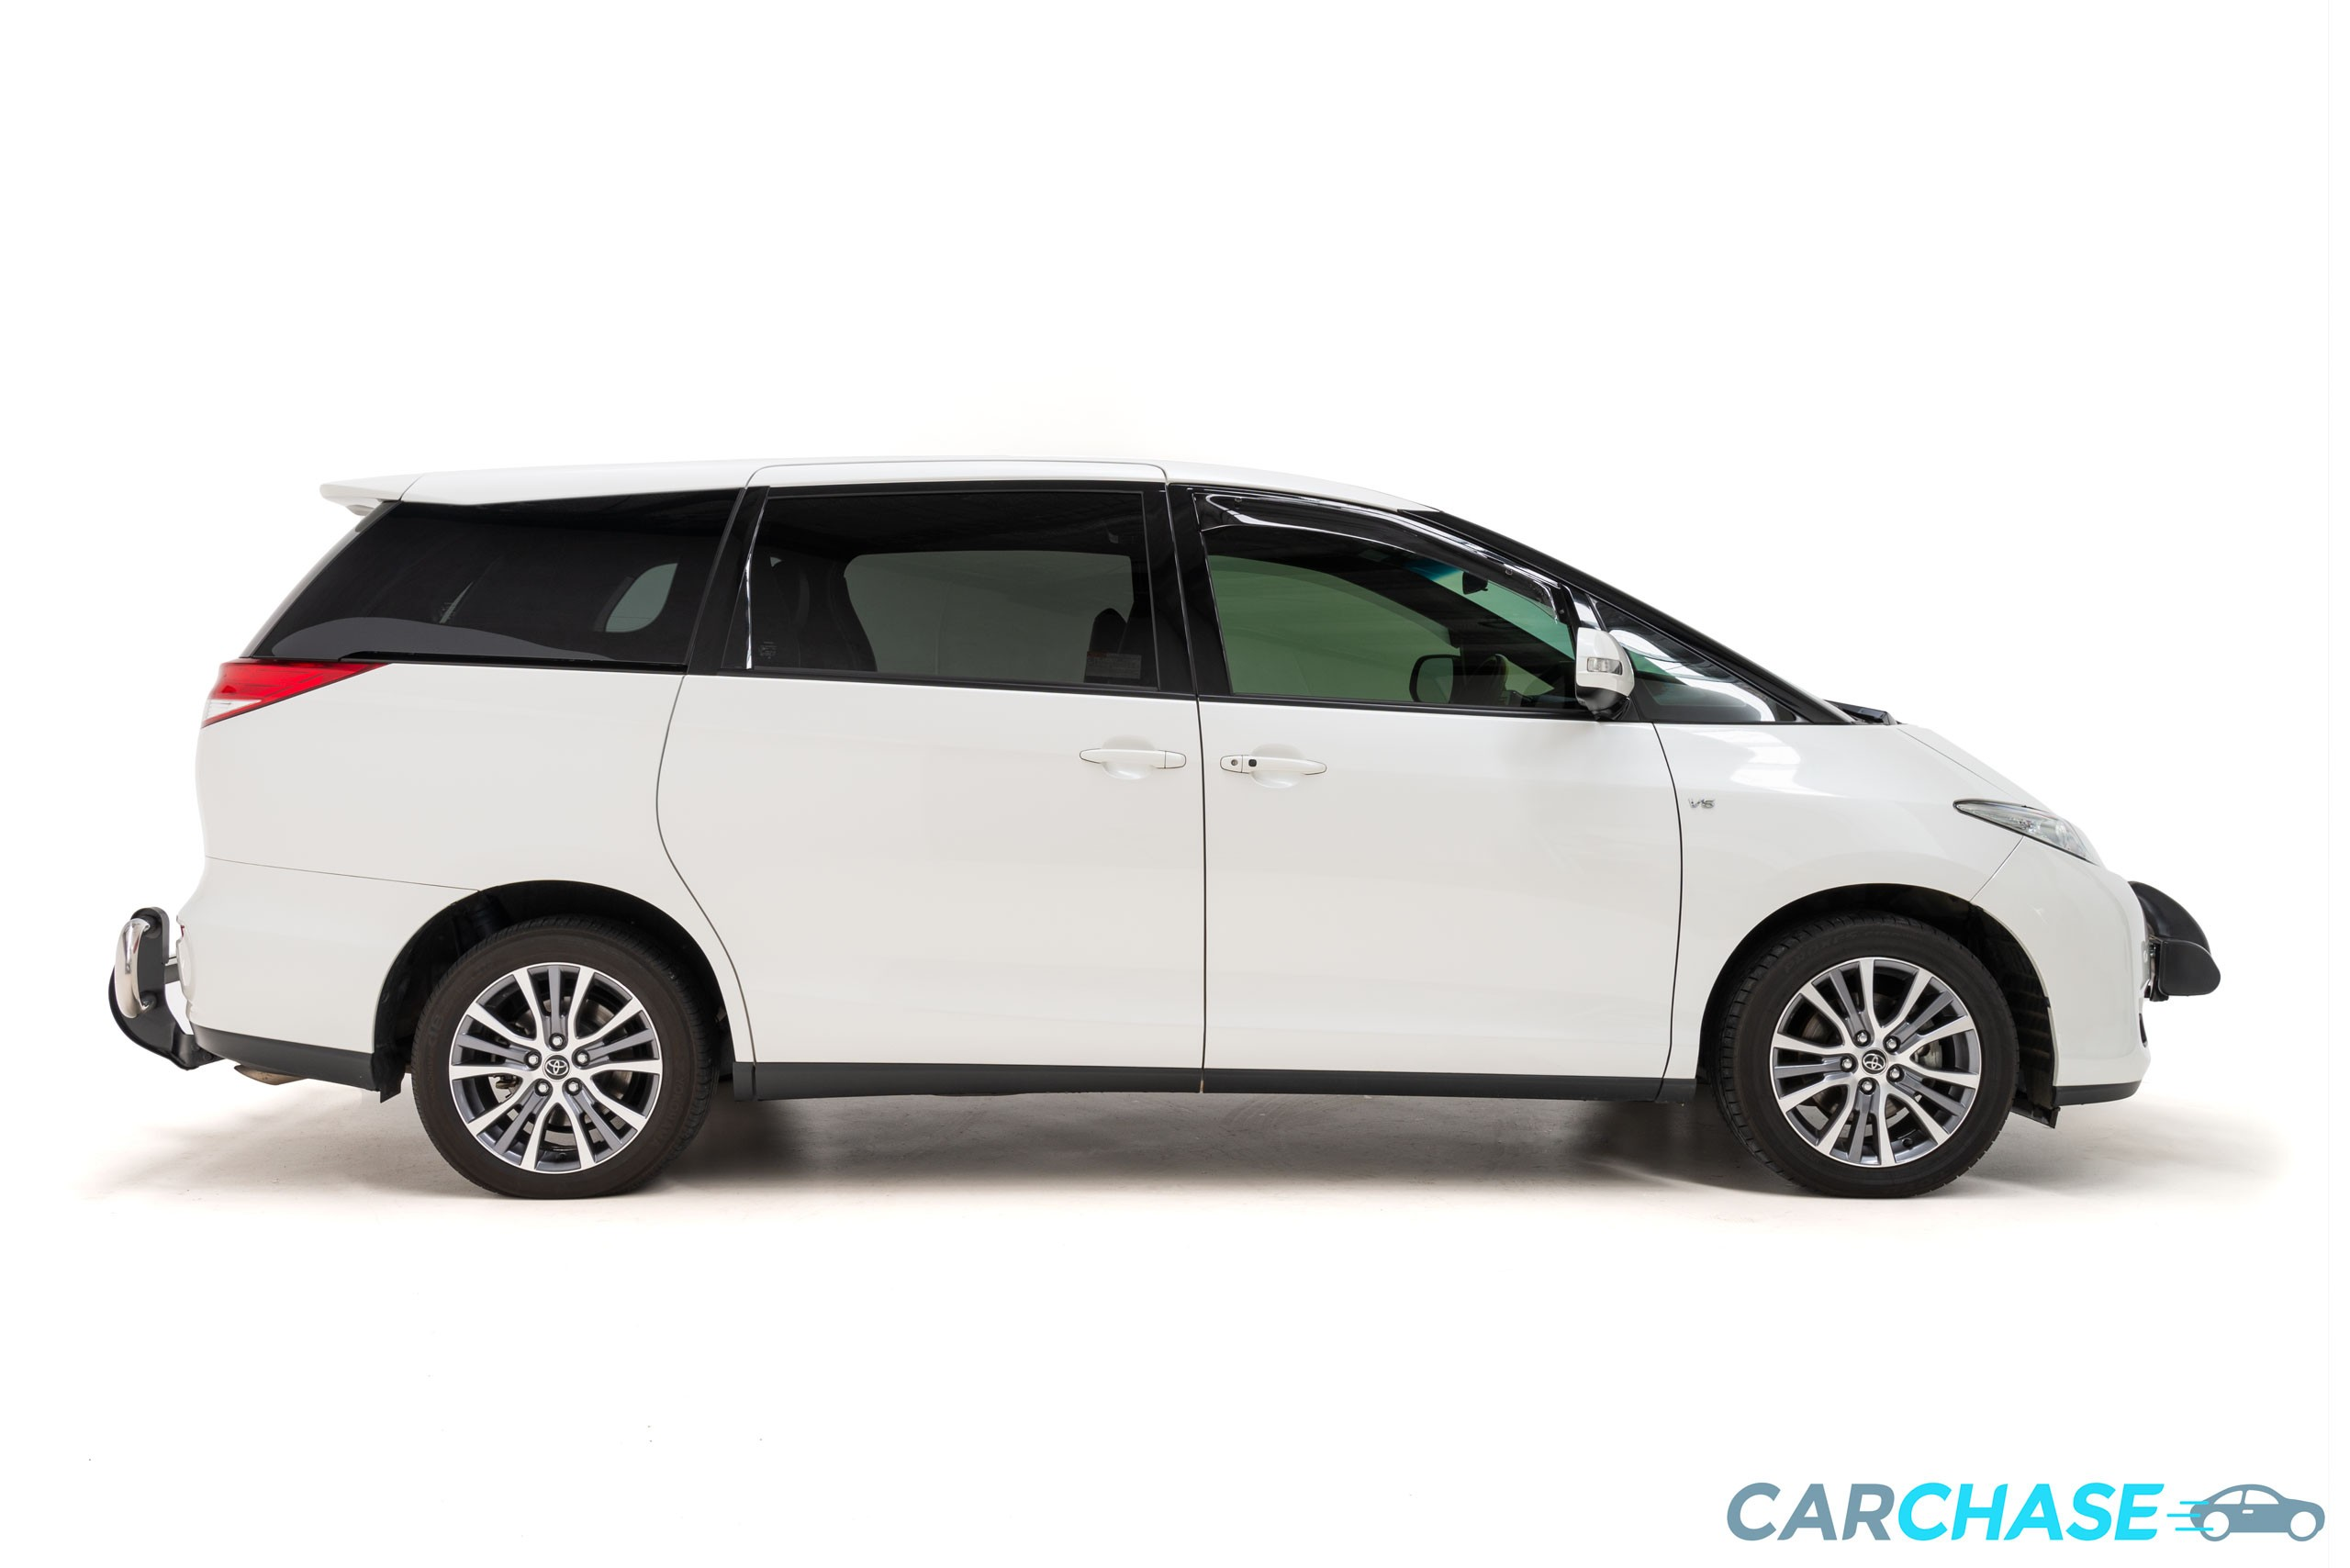 Image of right profile of 2017 Toyota Tarago Ultima